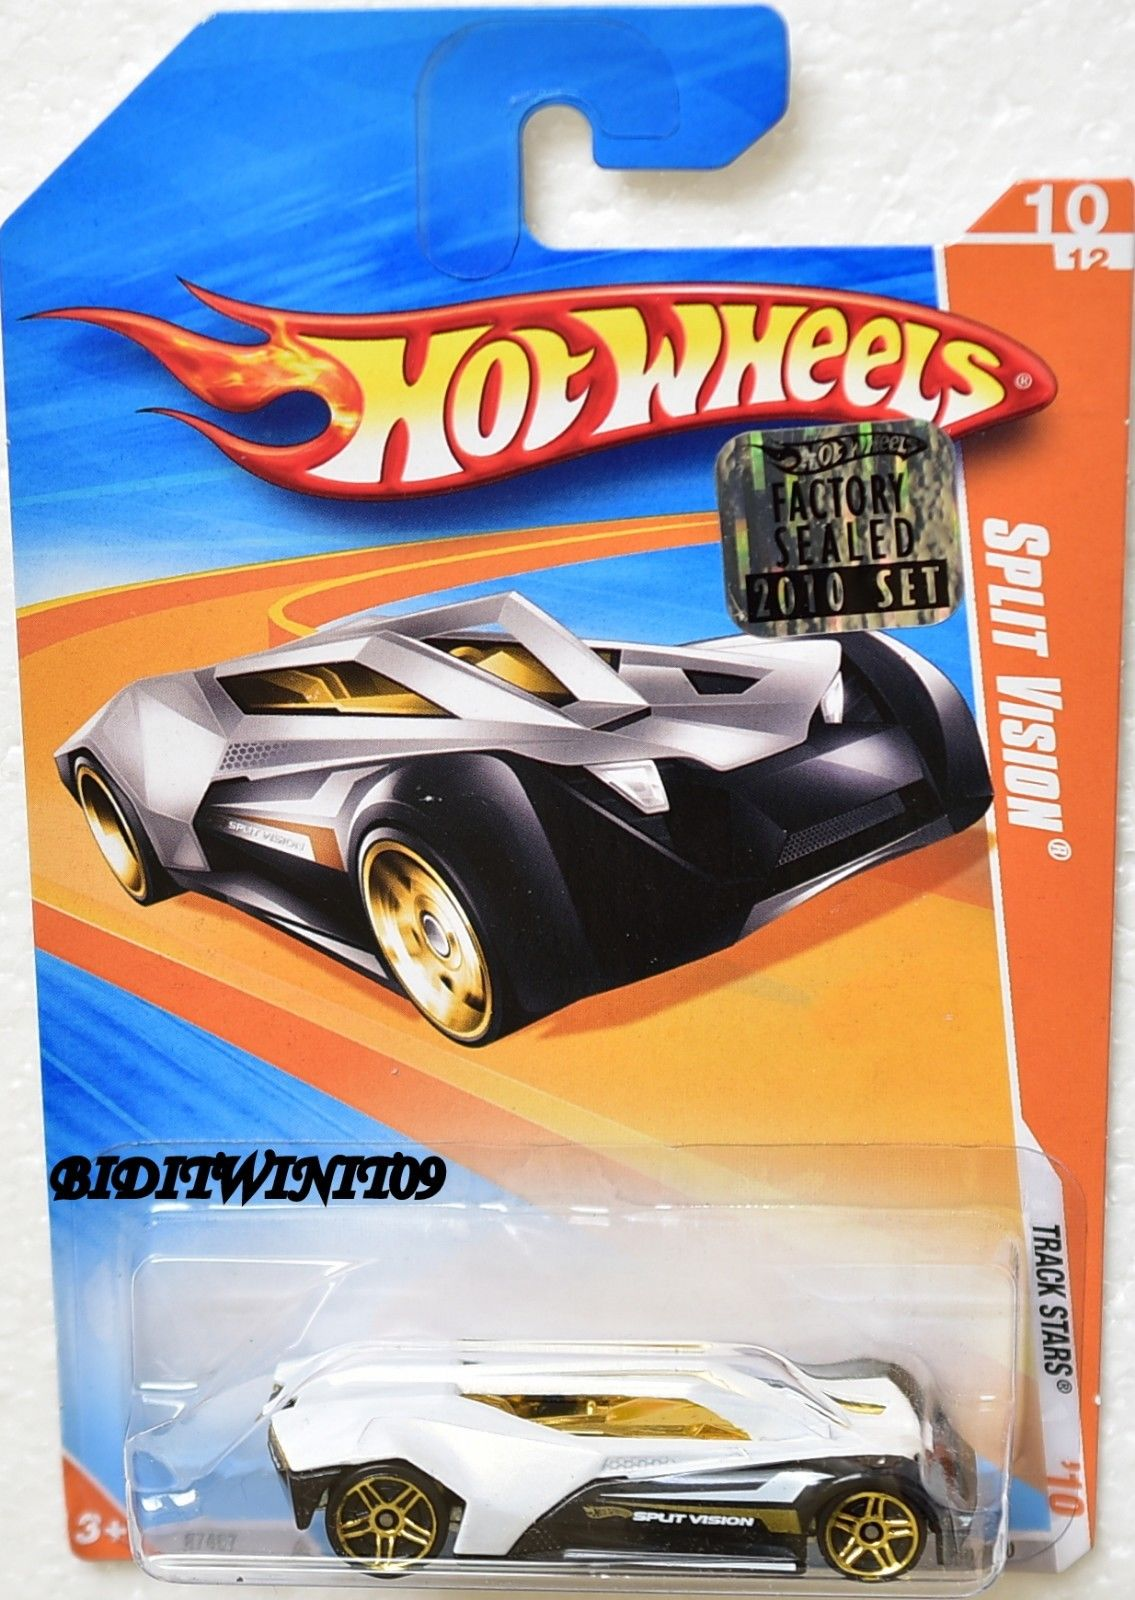 HOT WHEELS 2010 #10/12 SPLIT VISION - TRACK STARS FACTORY SEALED